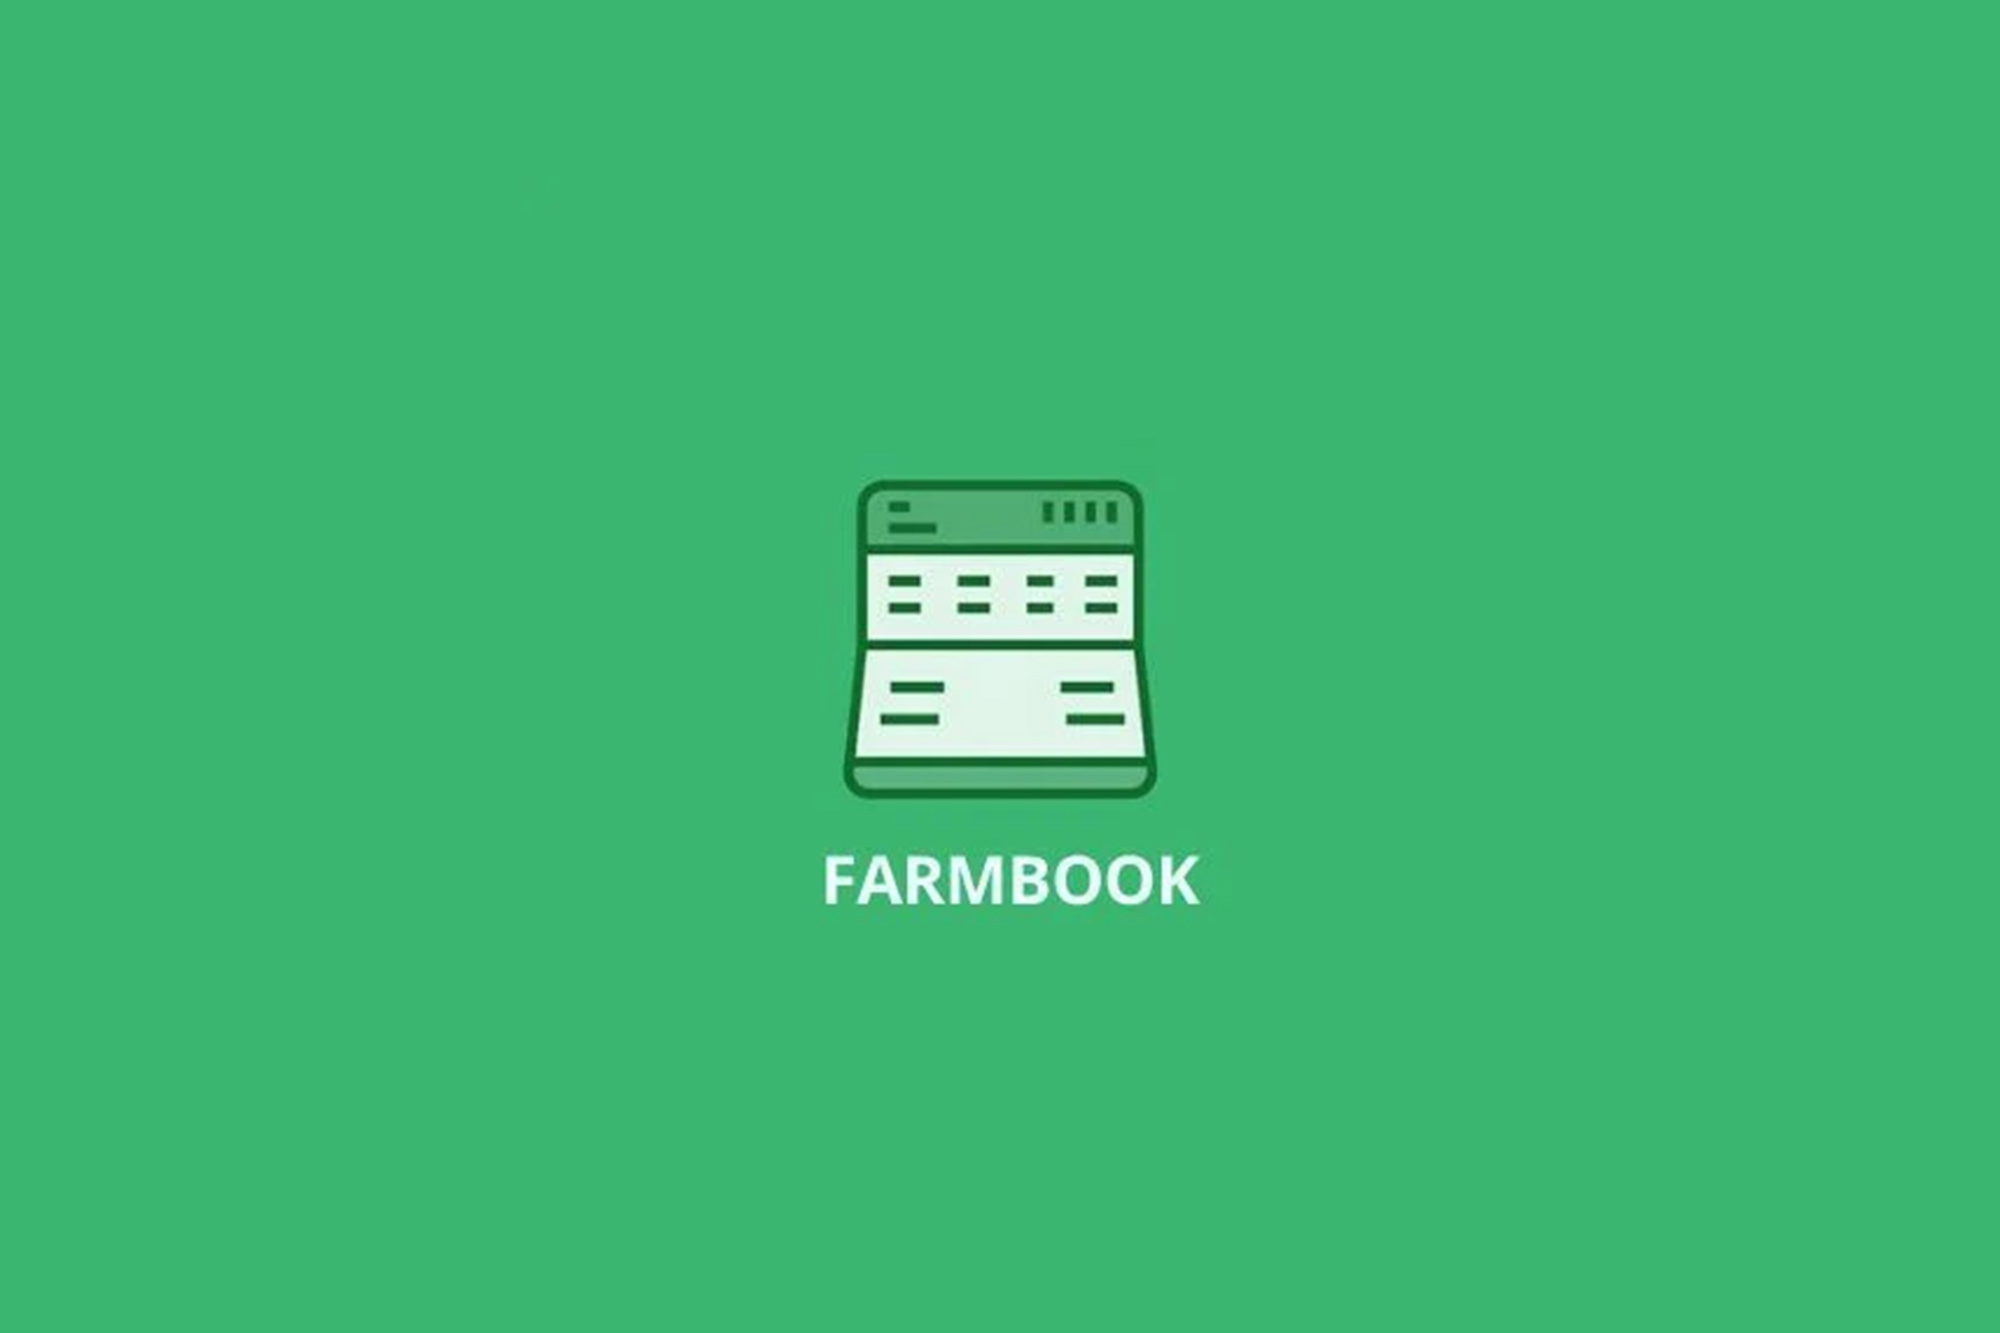 Farmbook Application